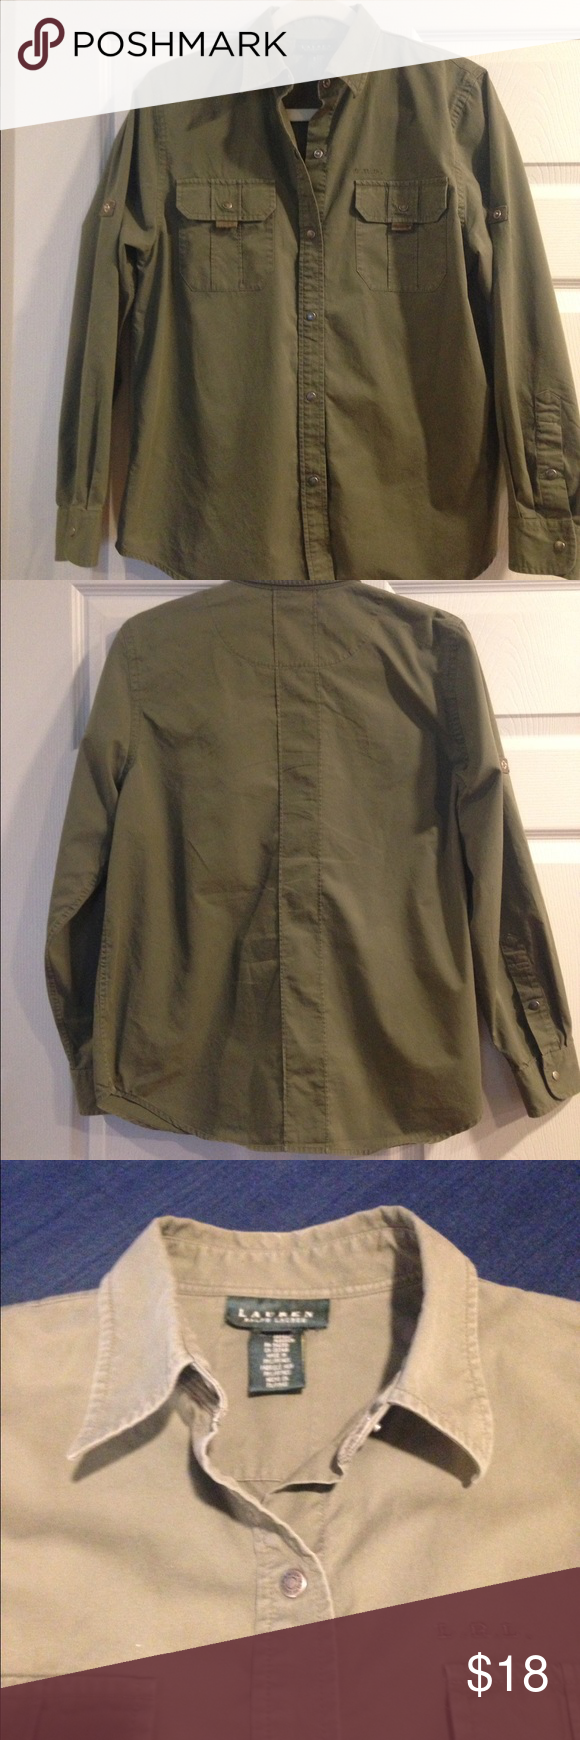 RALPH LAUREN BUTTON DOWN SHIRT!!! Really great Ralph Lauren button down shirt!! Shirt is olive green and can become short sleeve with button up cuff!! Really comfortable....great for layering!!! Ralph Lauren Tops Button Down Shirts